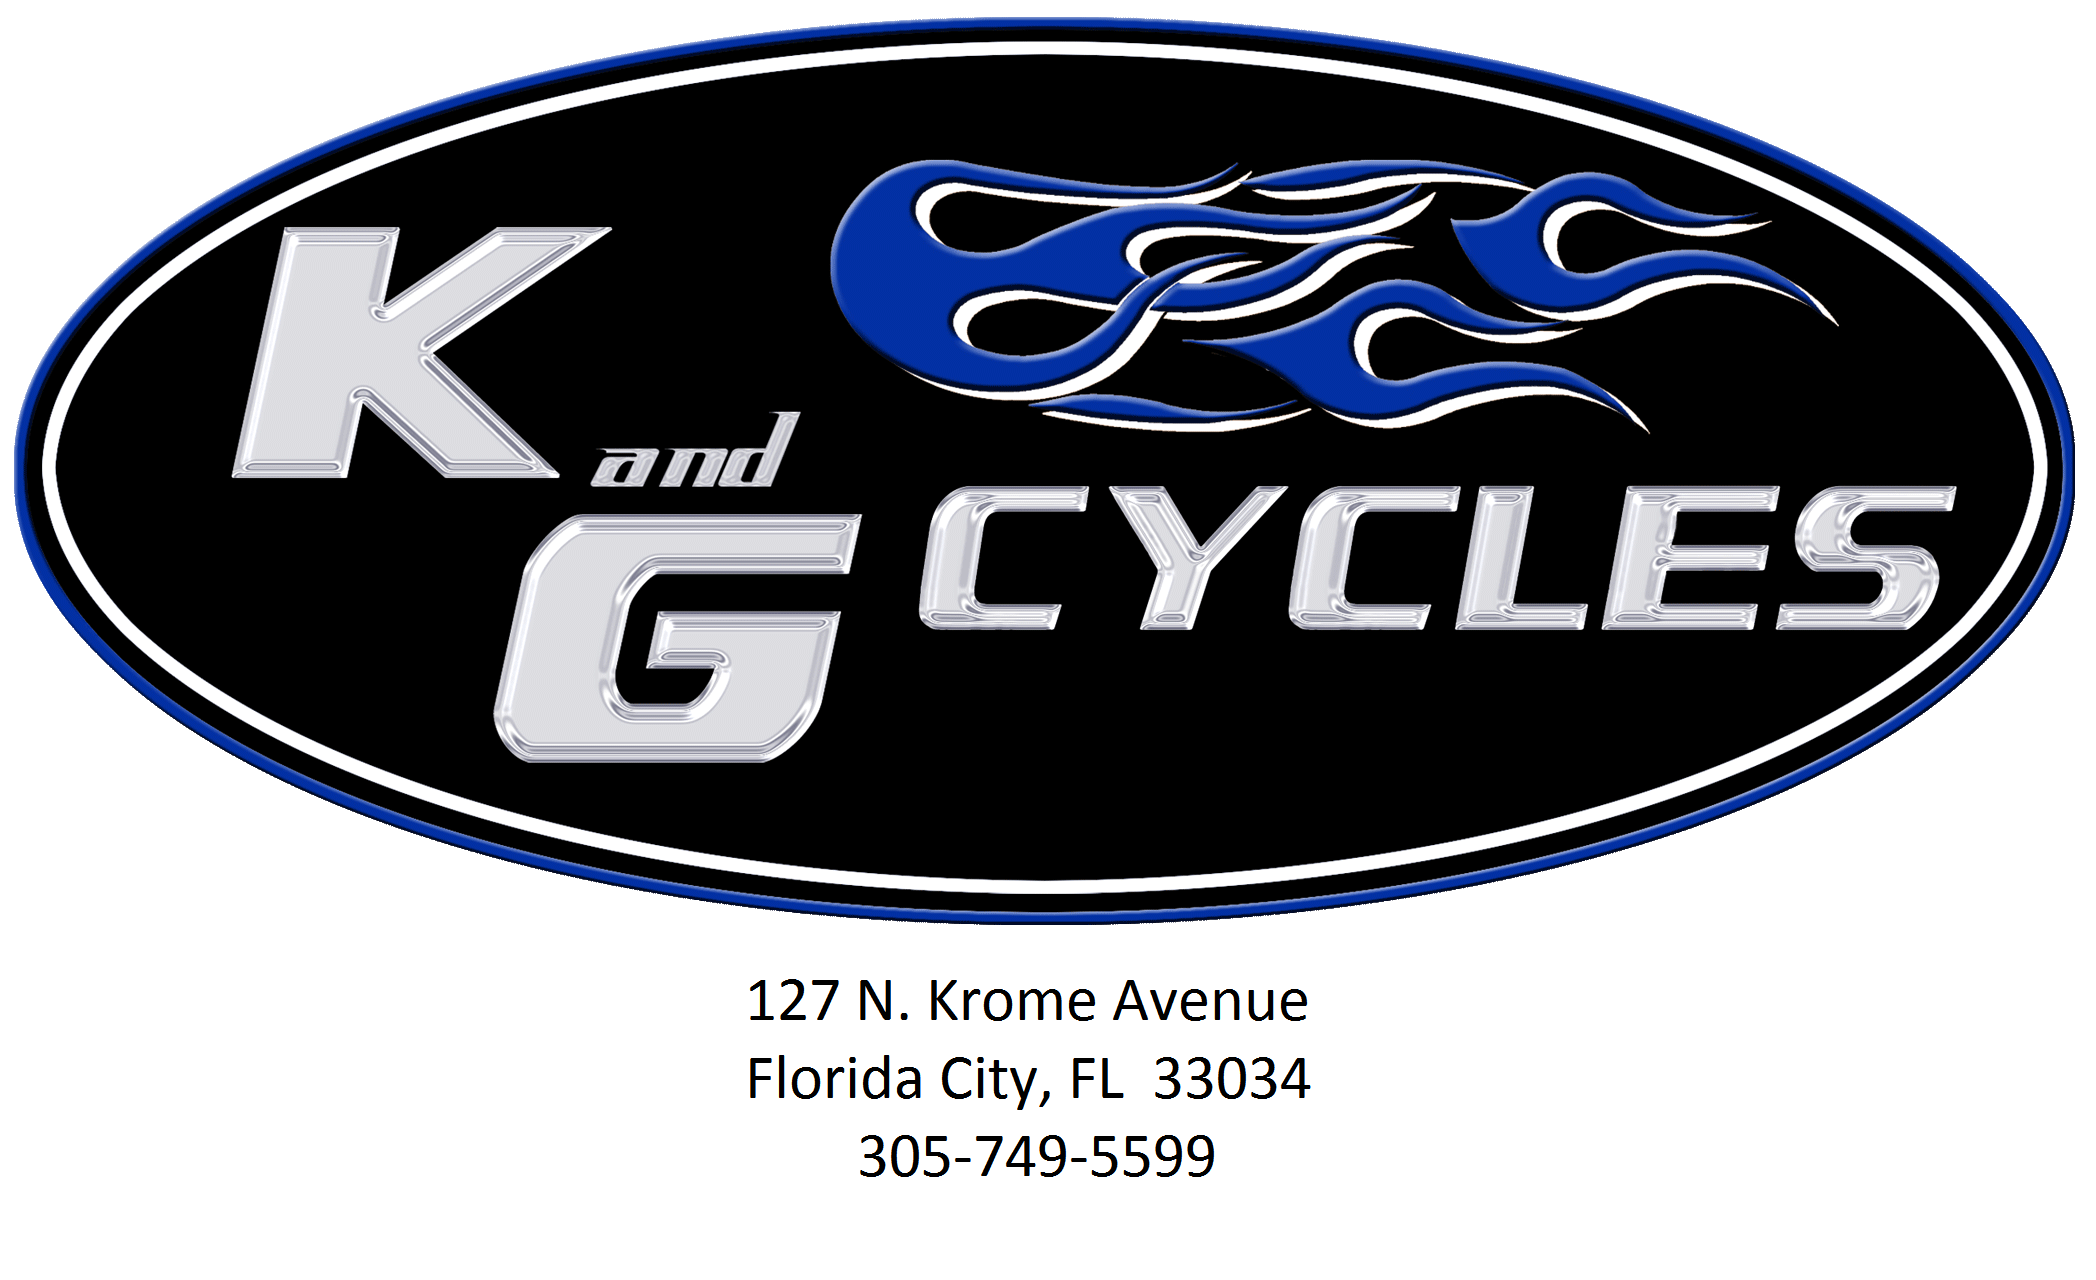 Motorcycle Supply Store In Florida City K And G Cycles Kuryakyn Trailer Wiring Harness Electrical Parts Street Canada